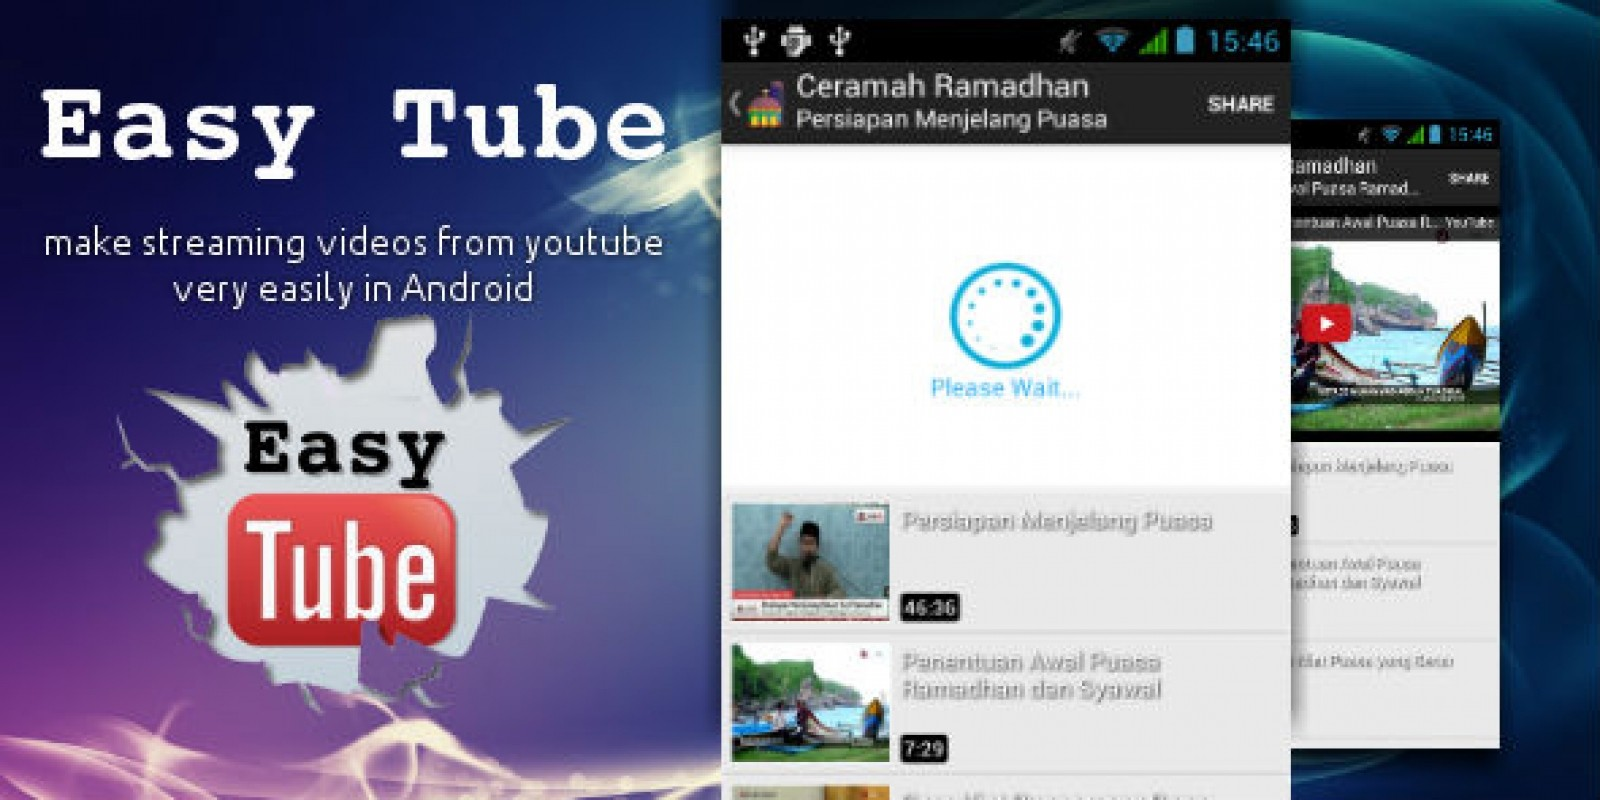 EasyTube - Android Youtube Streaming Library